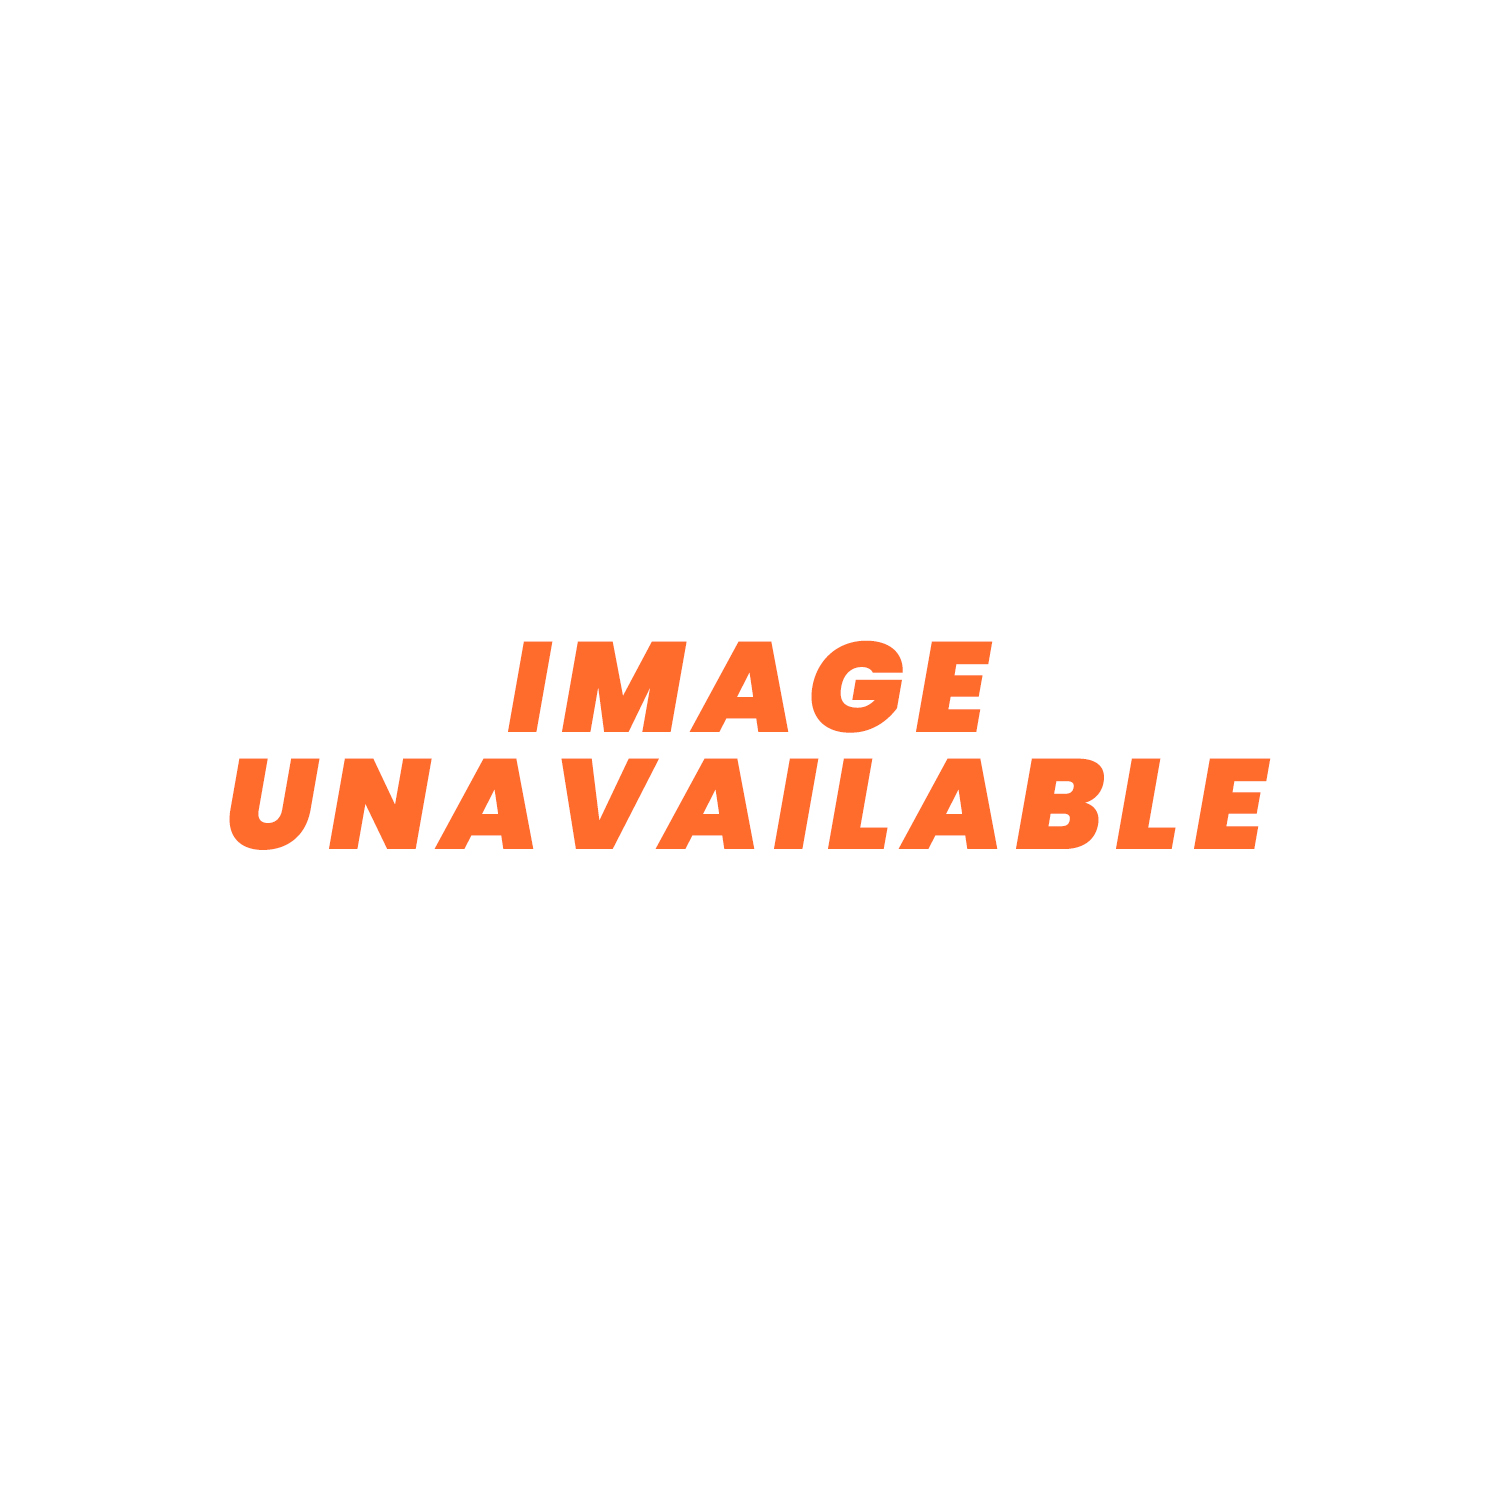 "SPAL Radiator Fan - 7.5"" (190mm) Pull VA14-AP7/C-34A 366cfm"